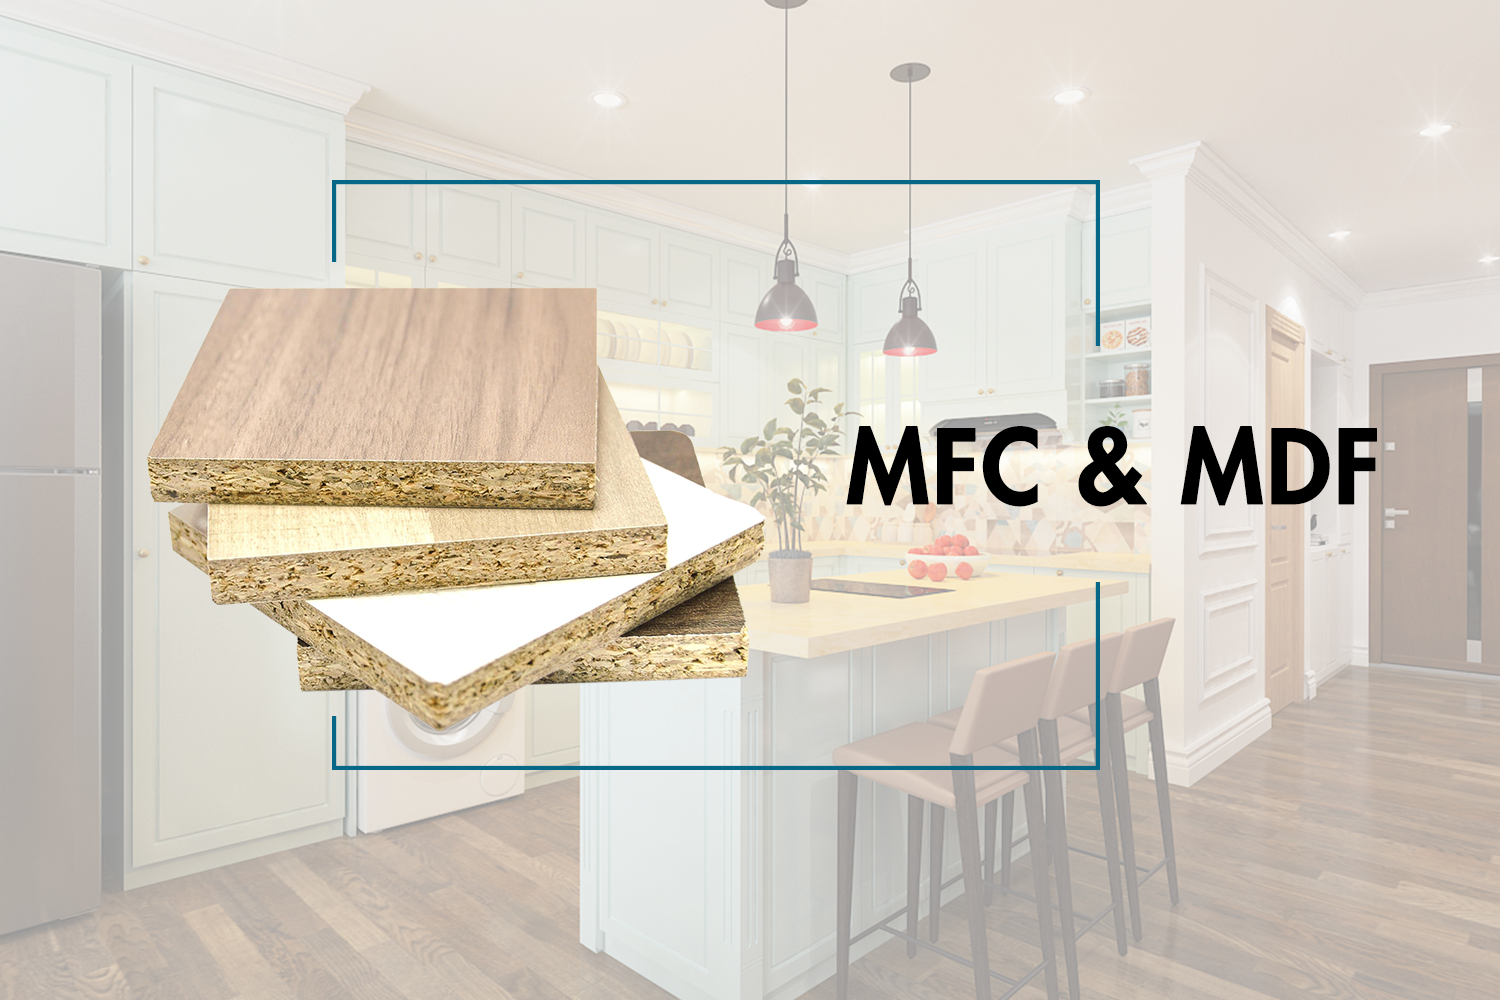 The difference between MFC & MDF